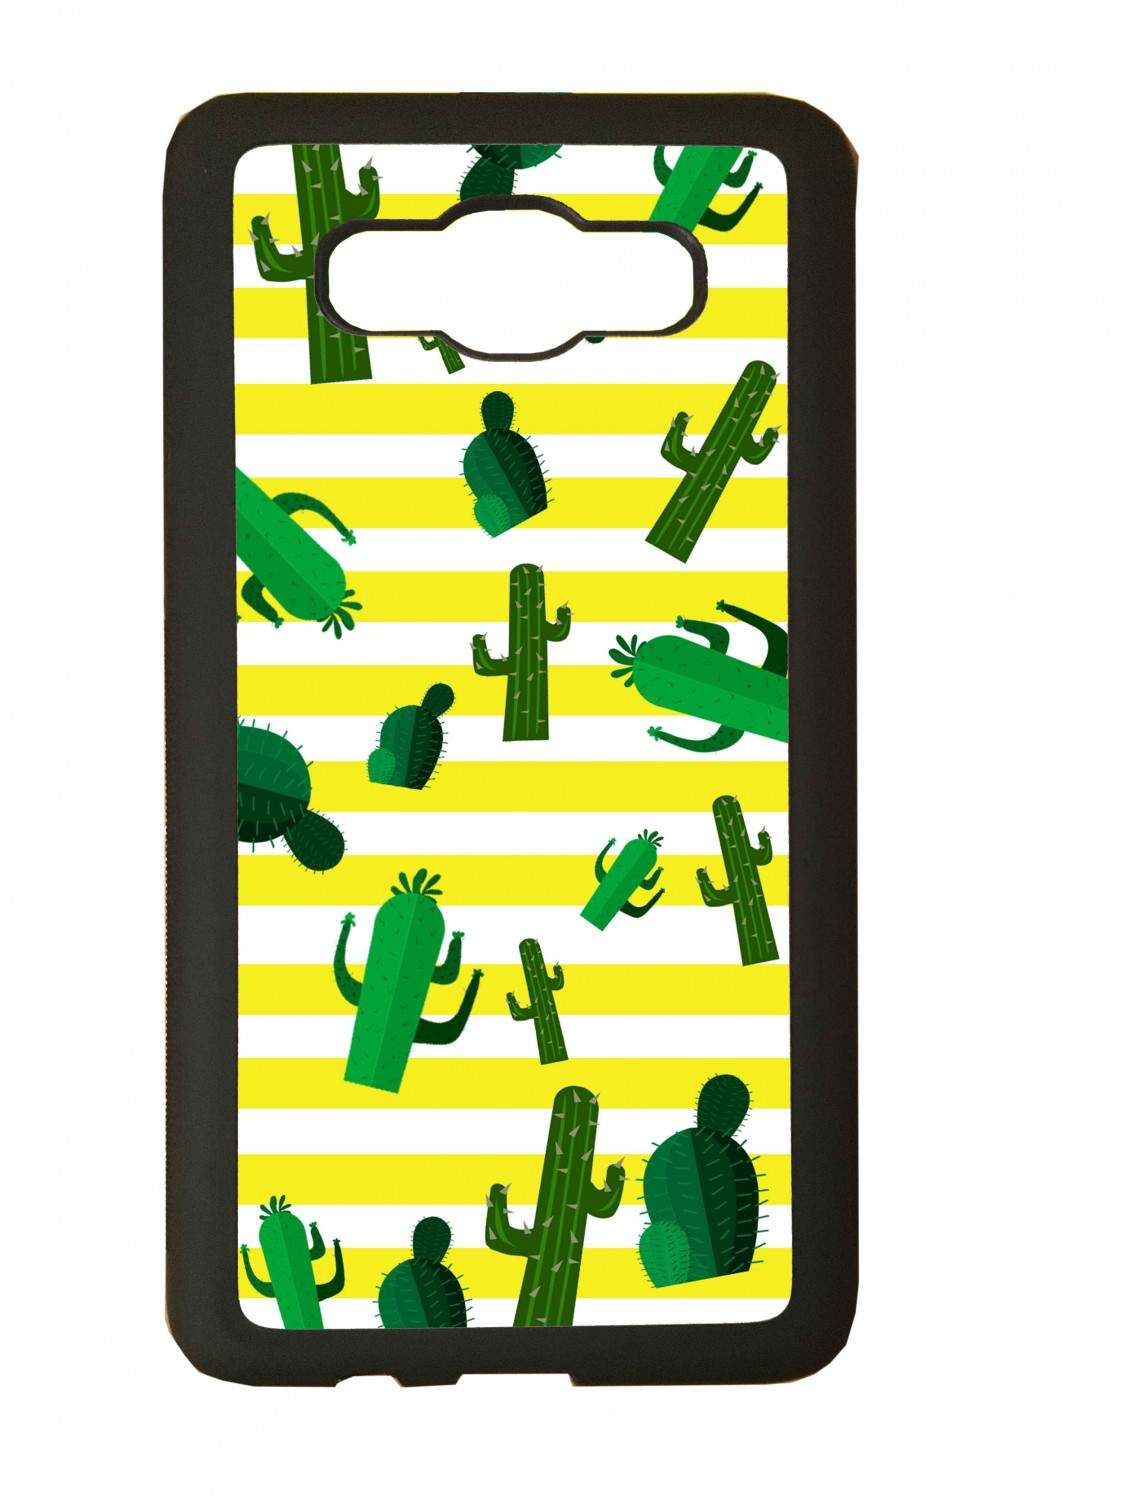 Funda carcasas móvil cactus compatible con movil Samsung Galaxy J5 2016